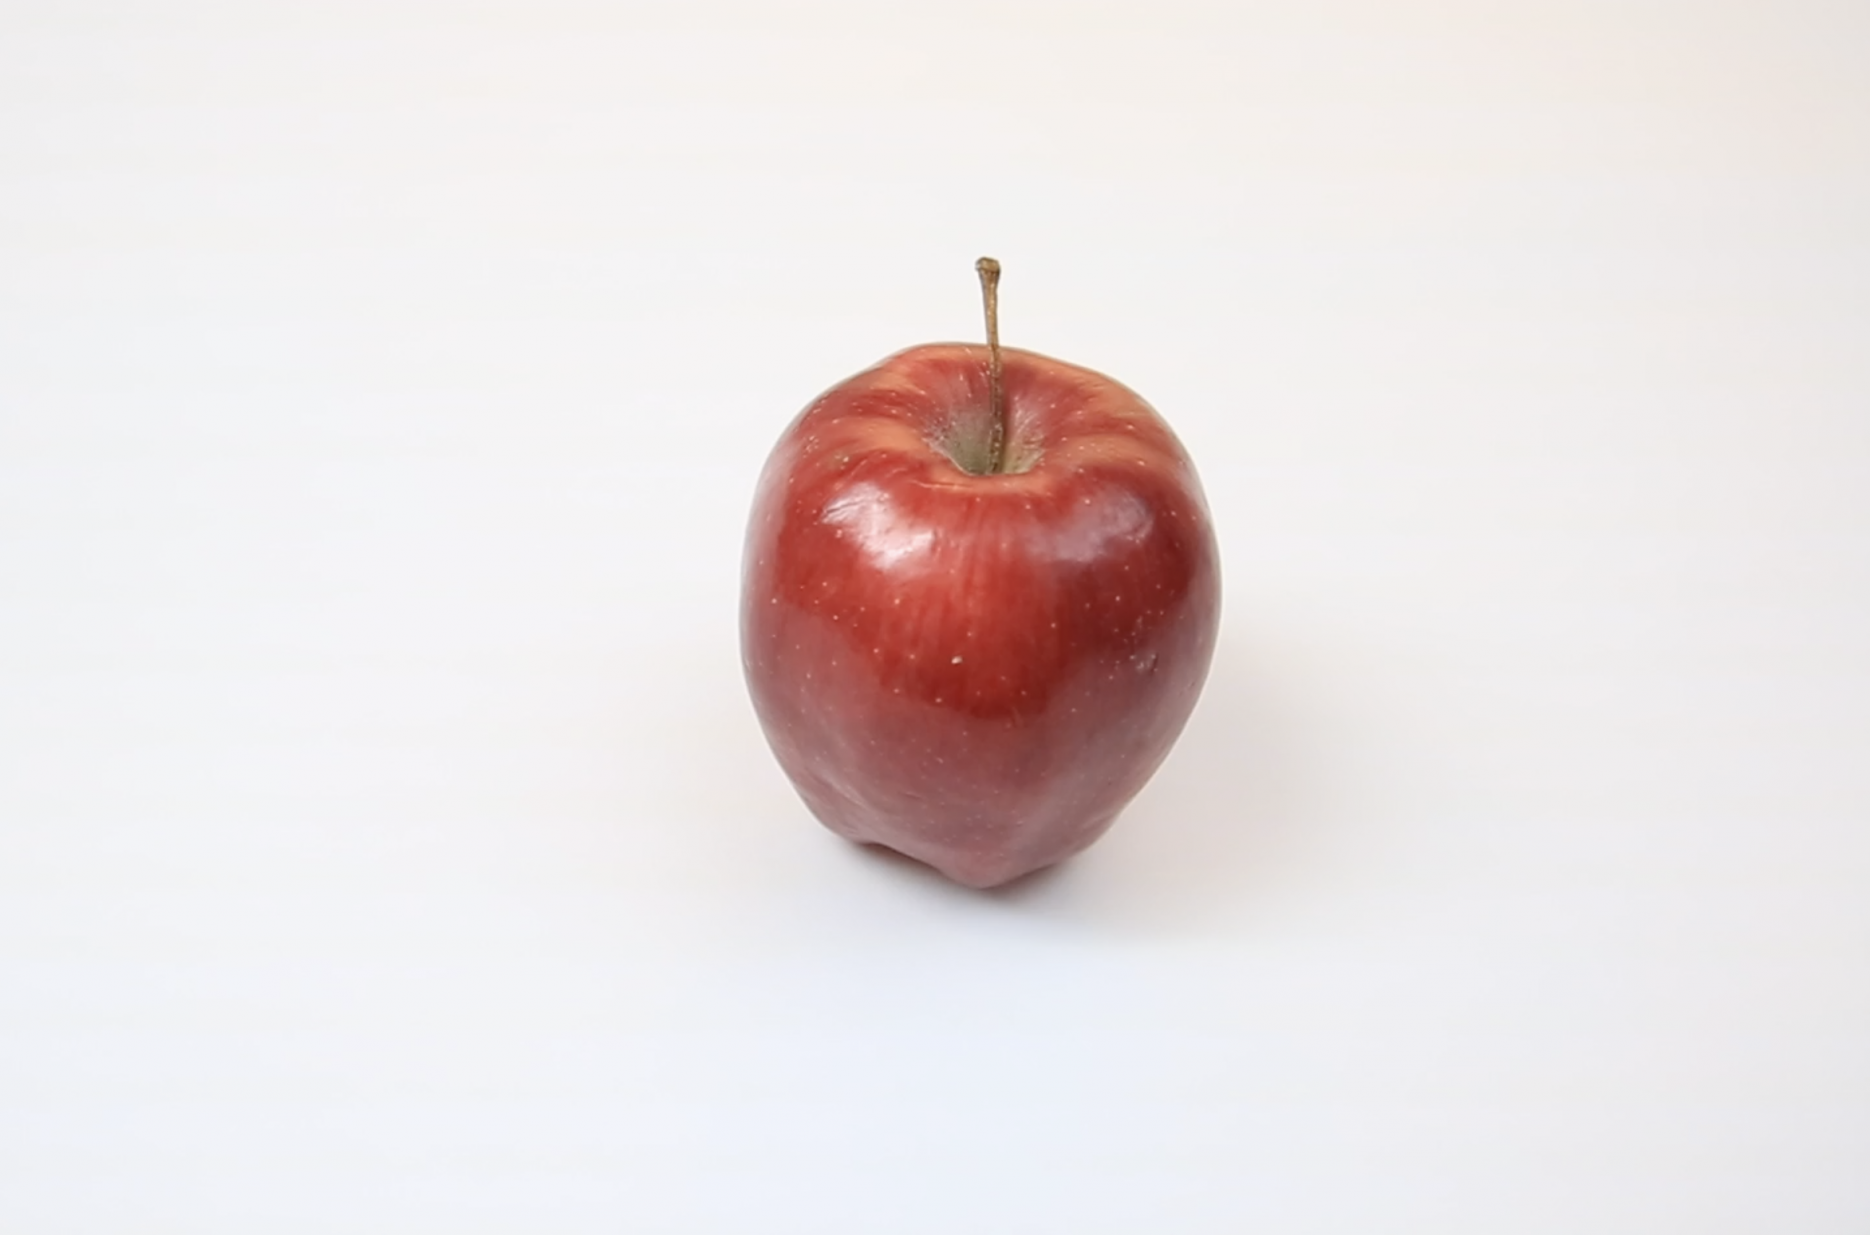 An Apple - One of many things we recorded on our first day of filming.